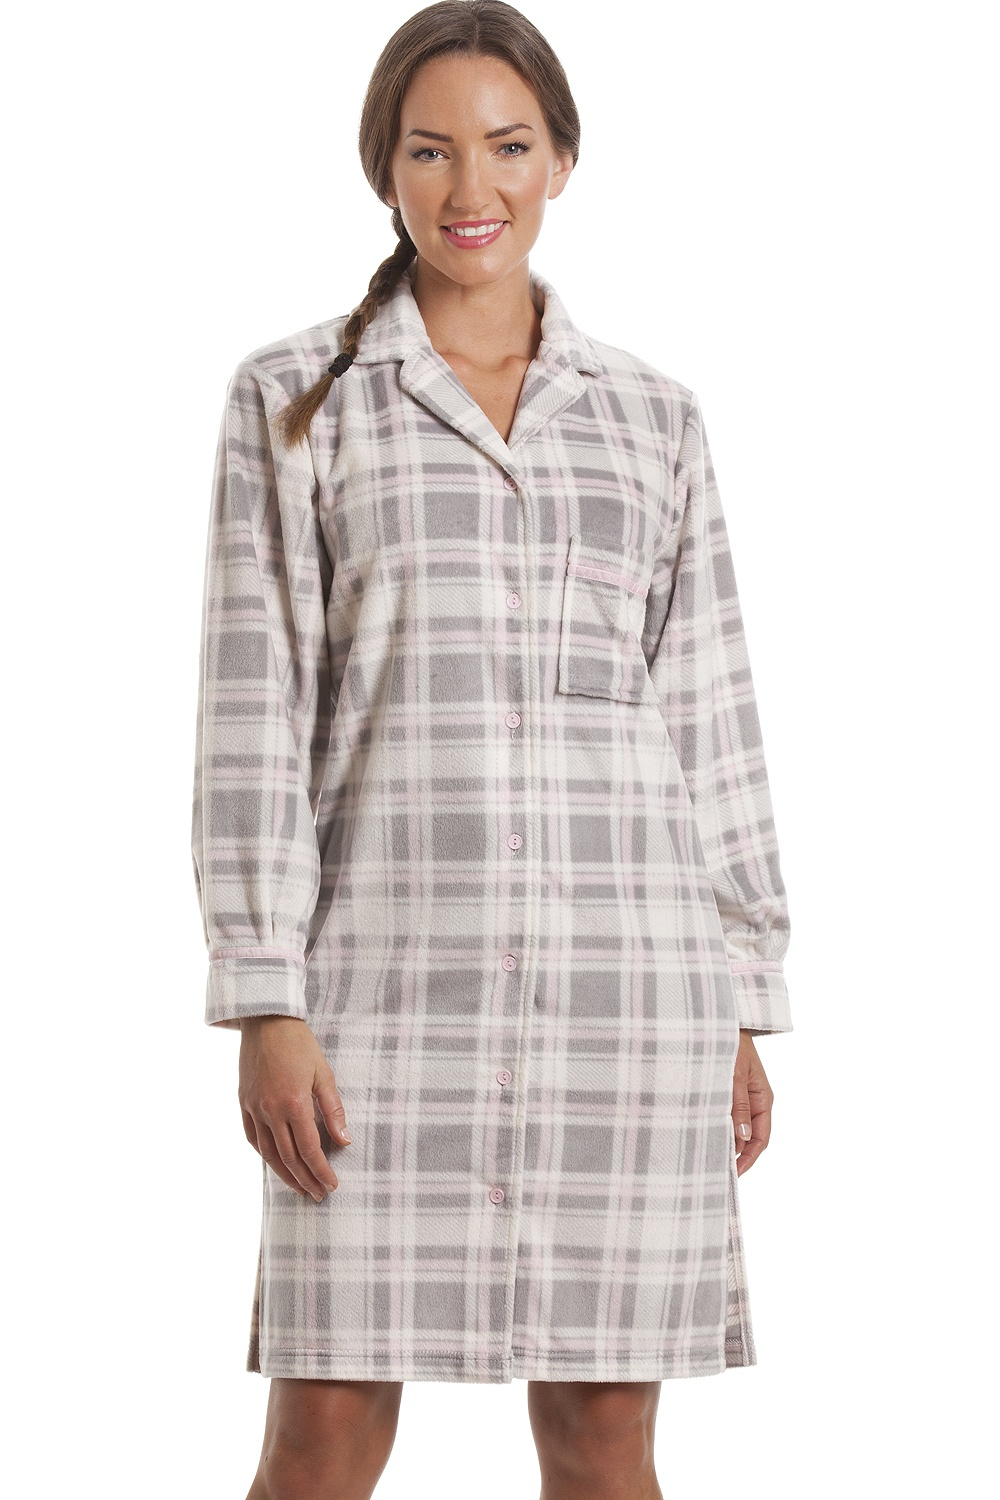 95c0fd58252a Womens Grey Checkered Fleece Button Front Nightshirt